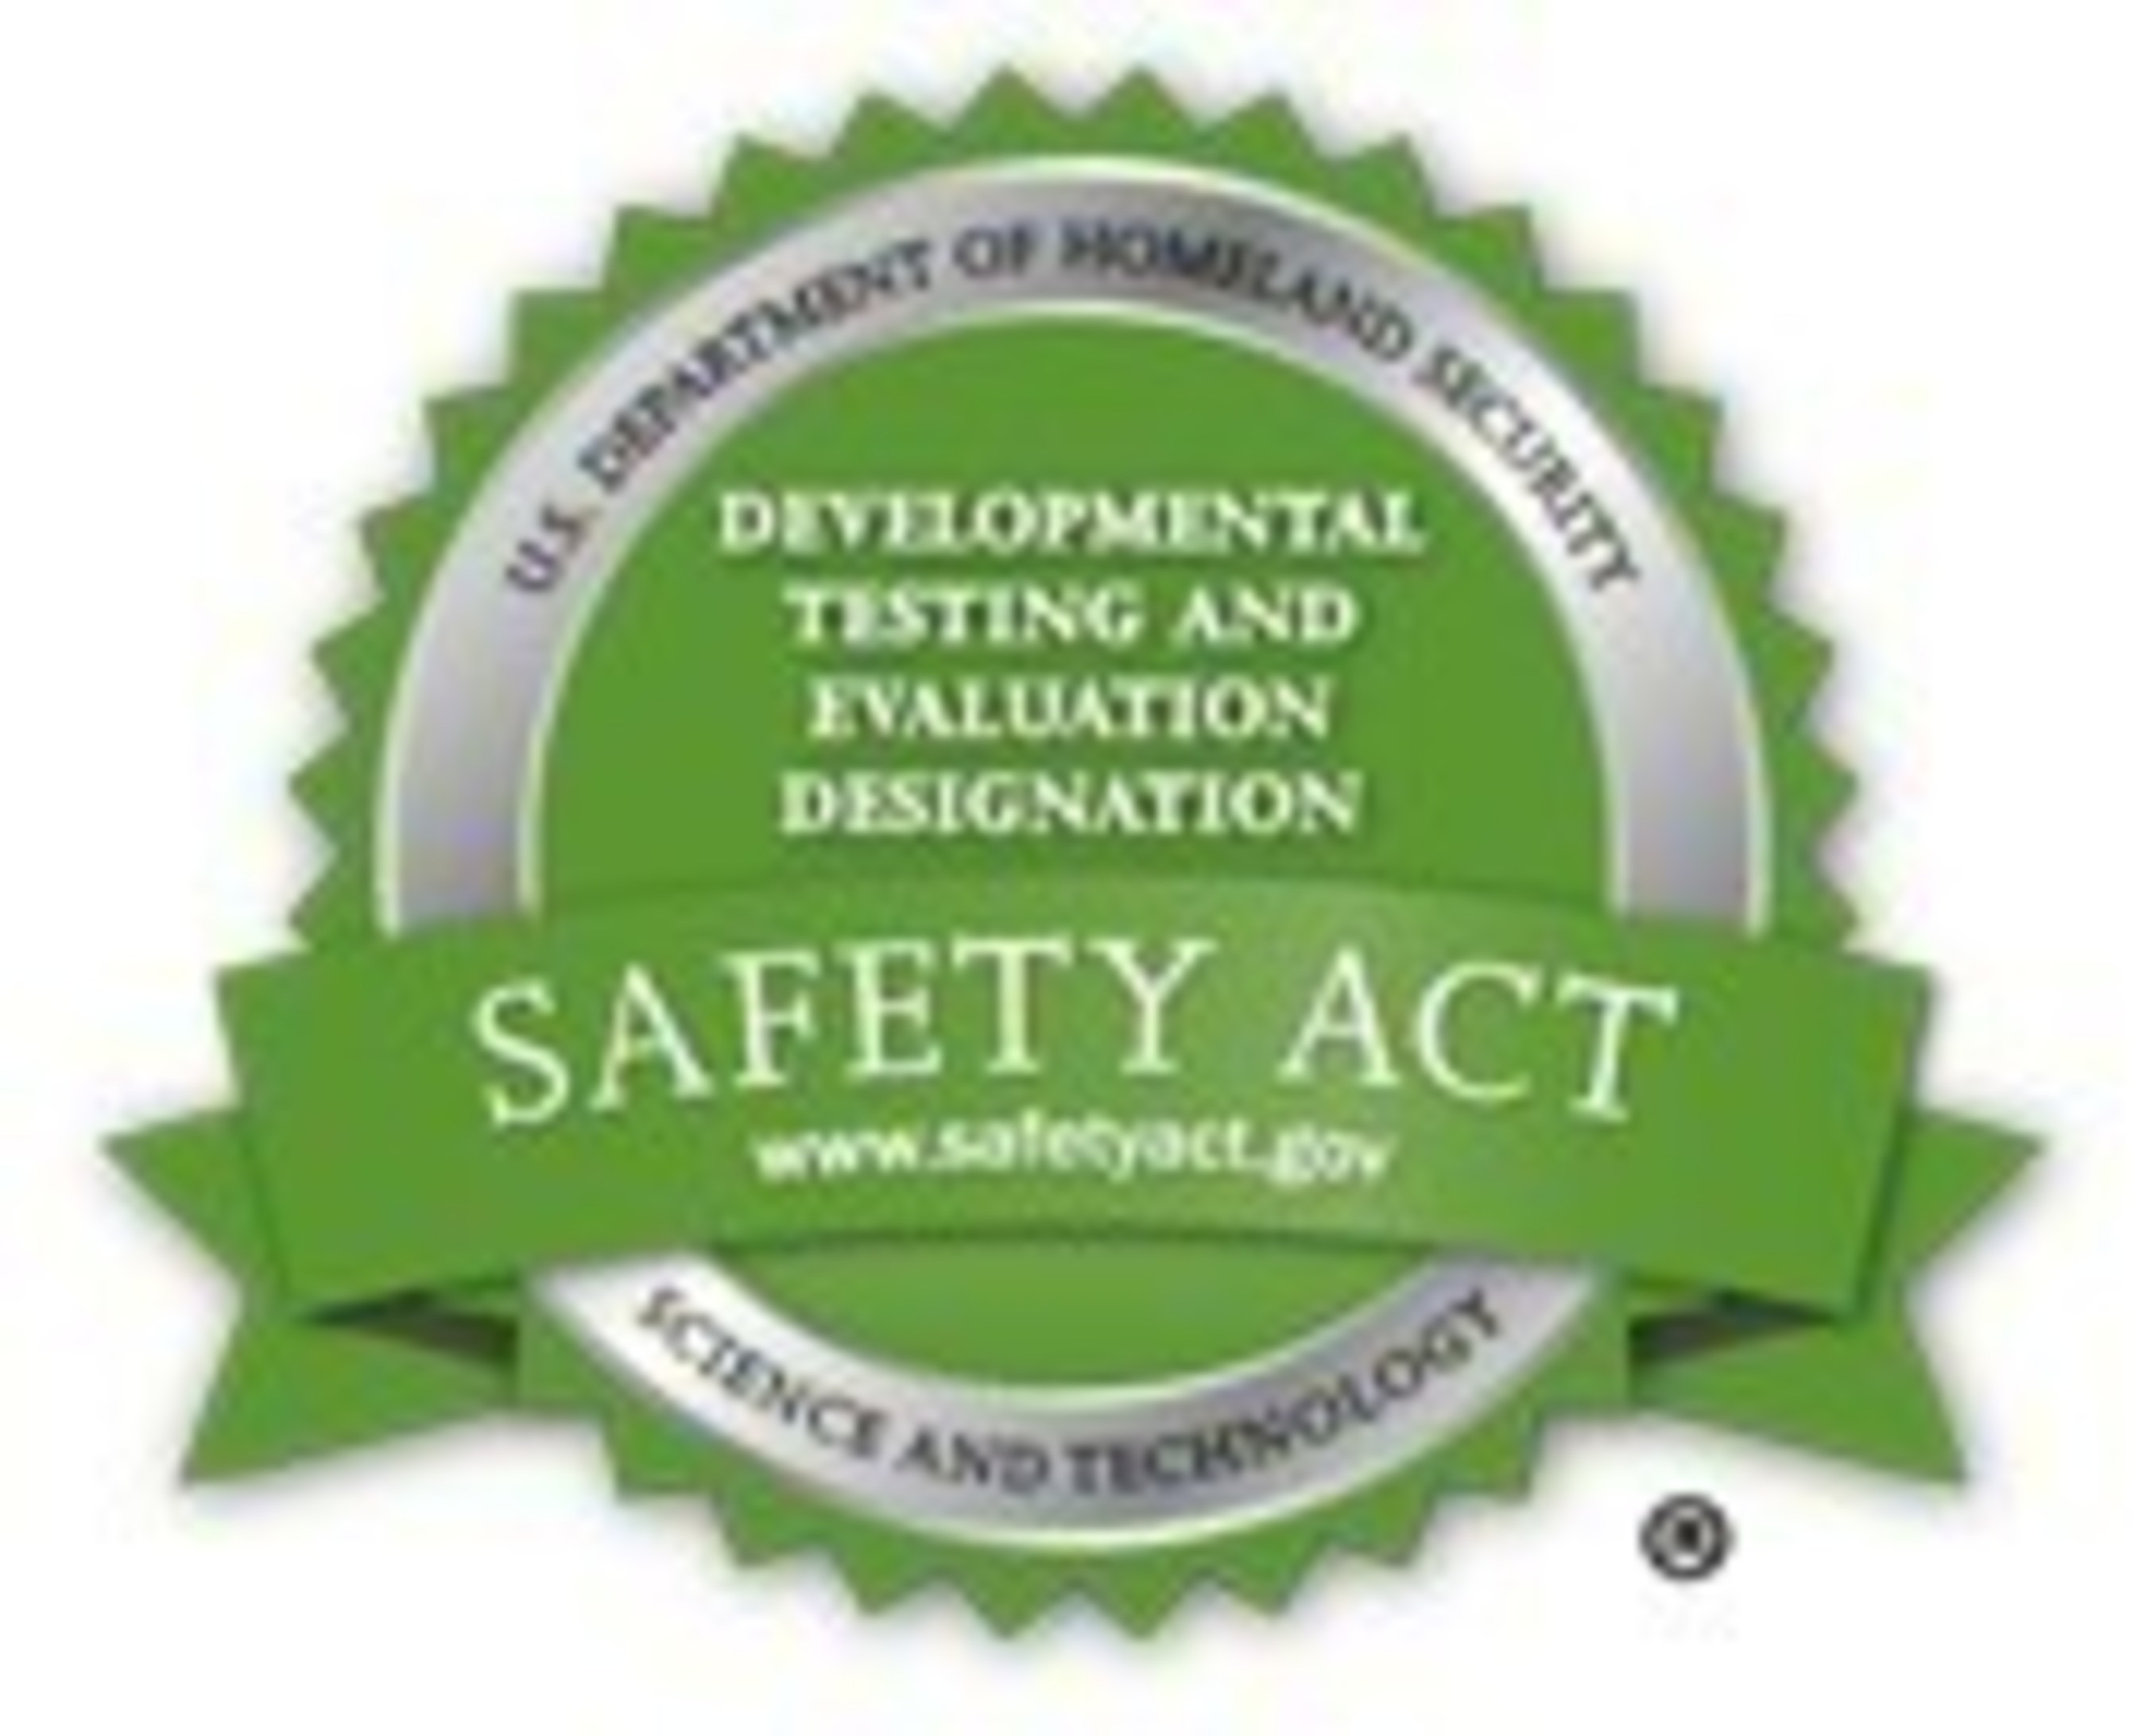 Metal Defender Walk Through Technology Approved by Homeland Security Safety Act